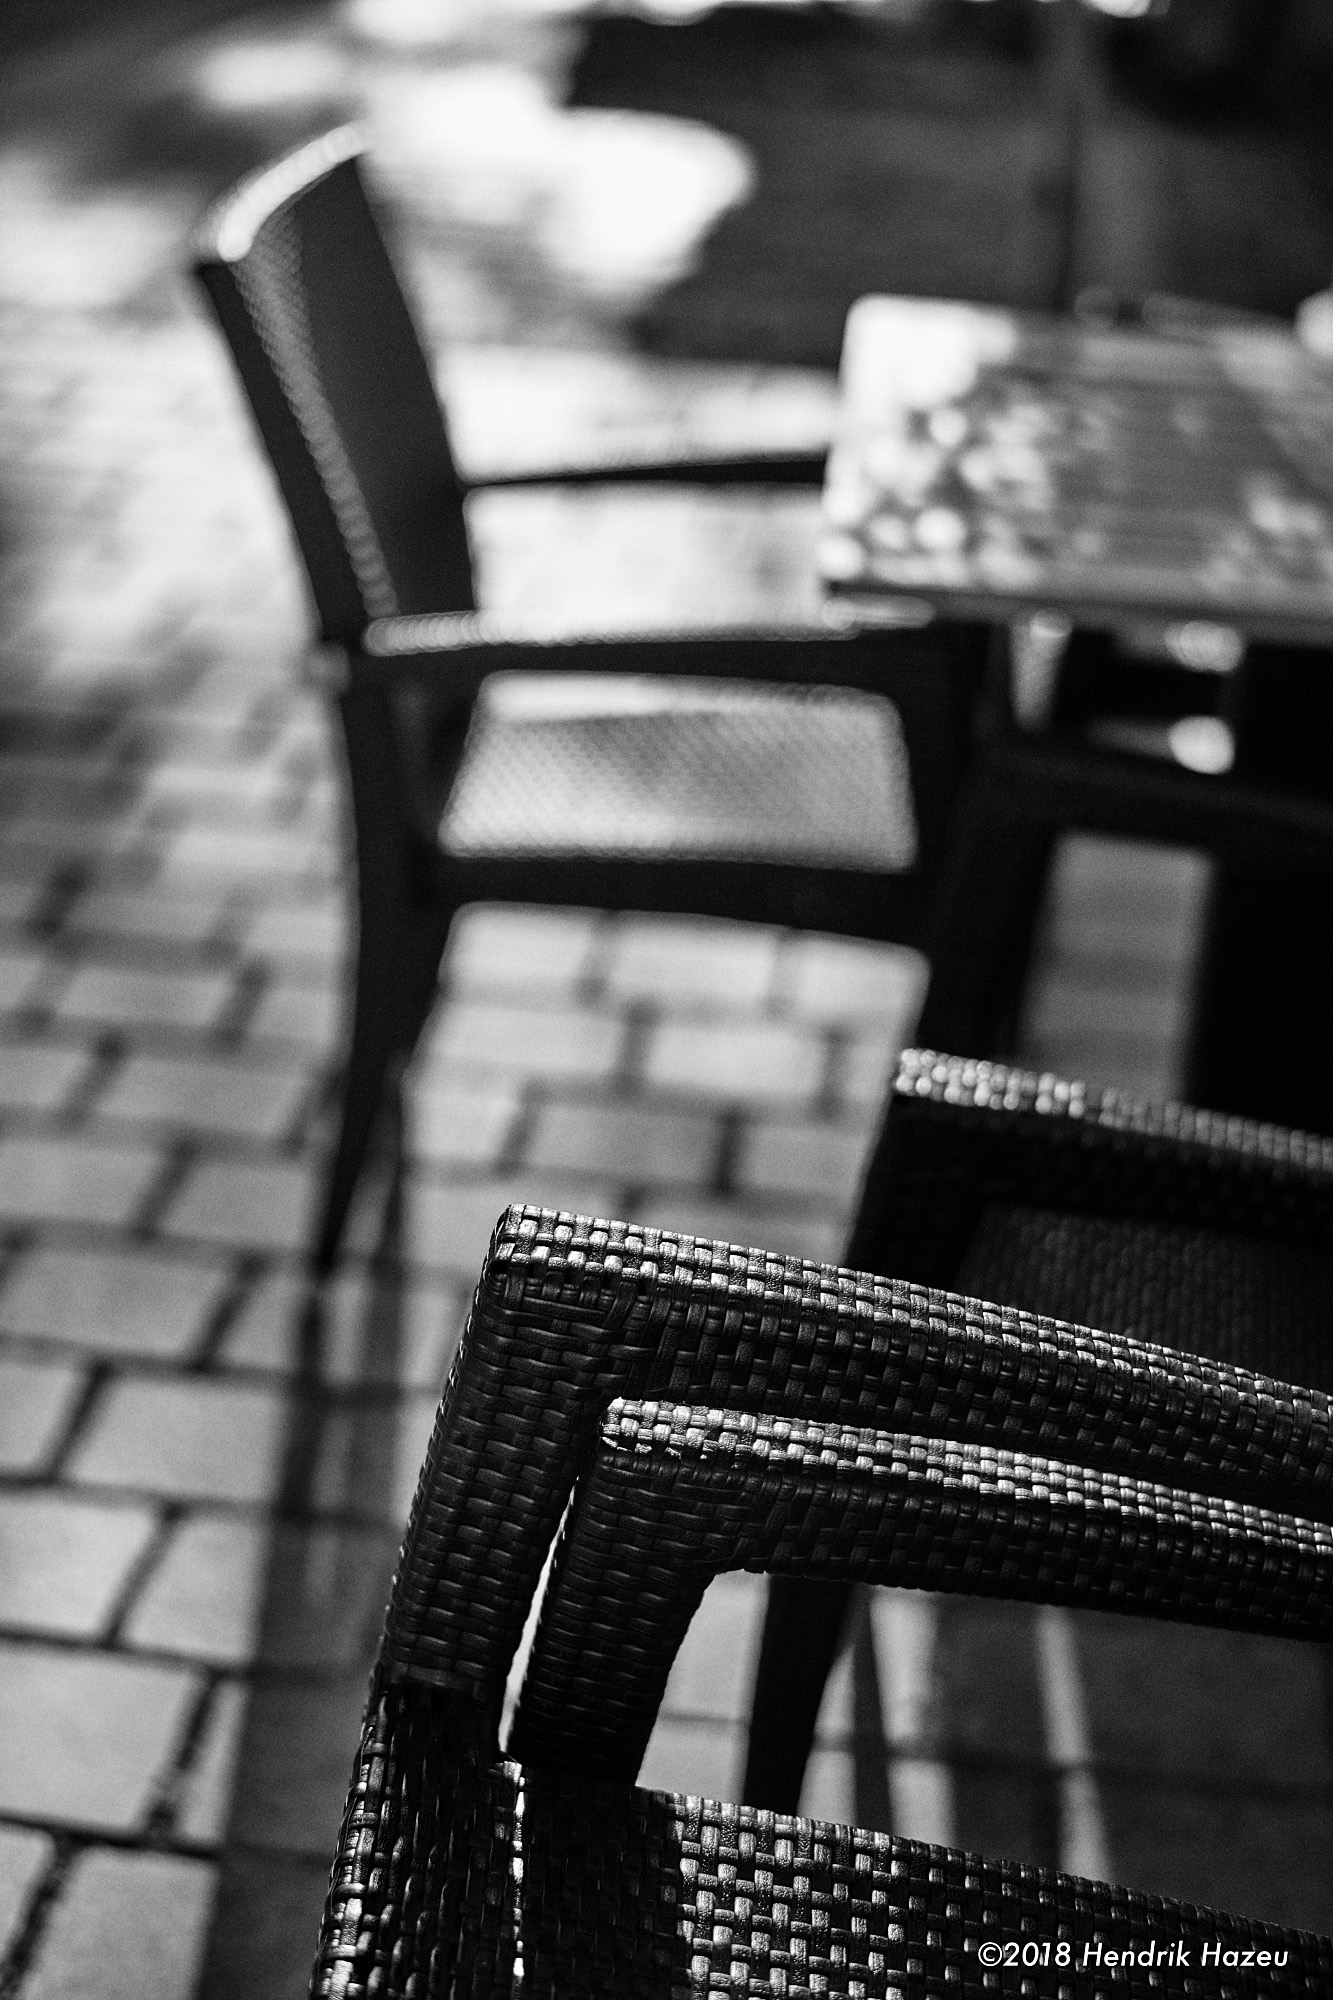 Shallow depth of field: Stacked chairs, Nikon 58mm f/1.4 on D850 @f/2, 1/8000 sec, ISO 450